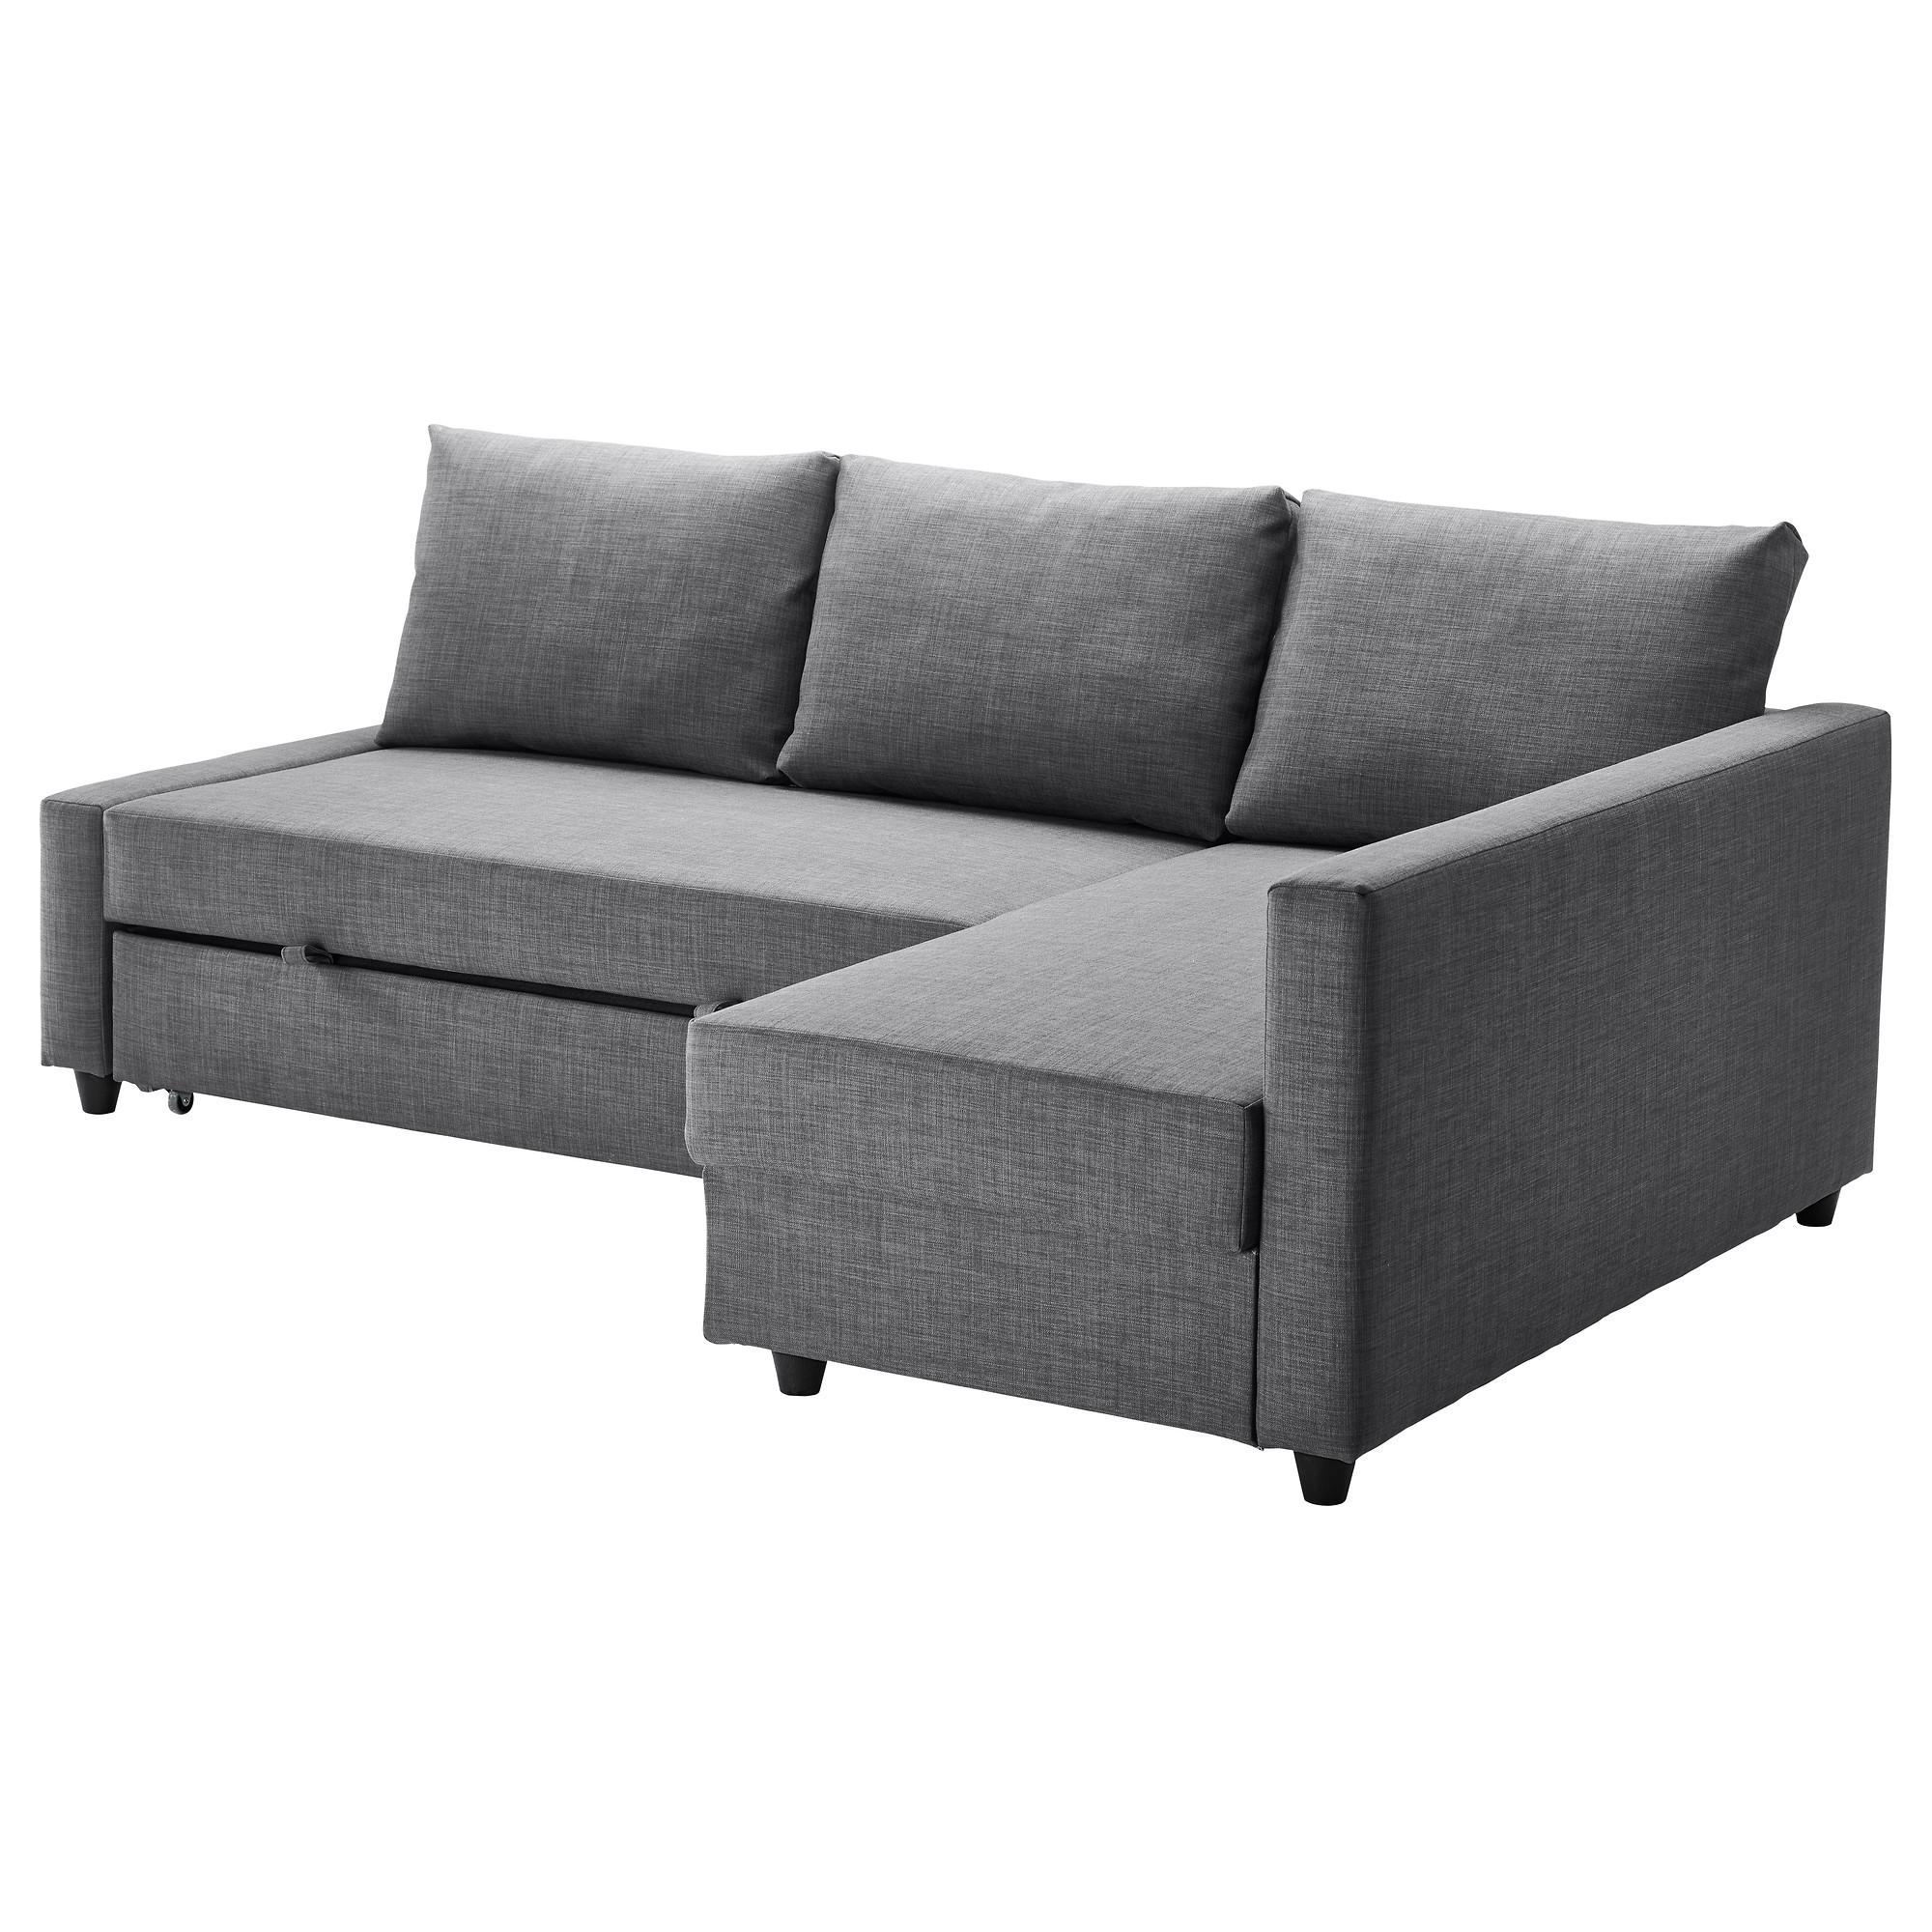 FRIHETEN Corner sofabed with storage Skiftebo dark gray IKEA